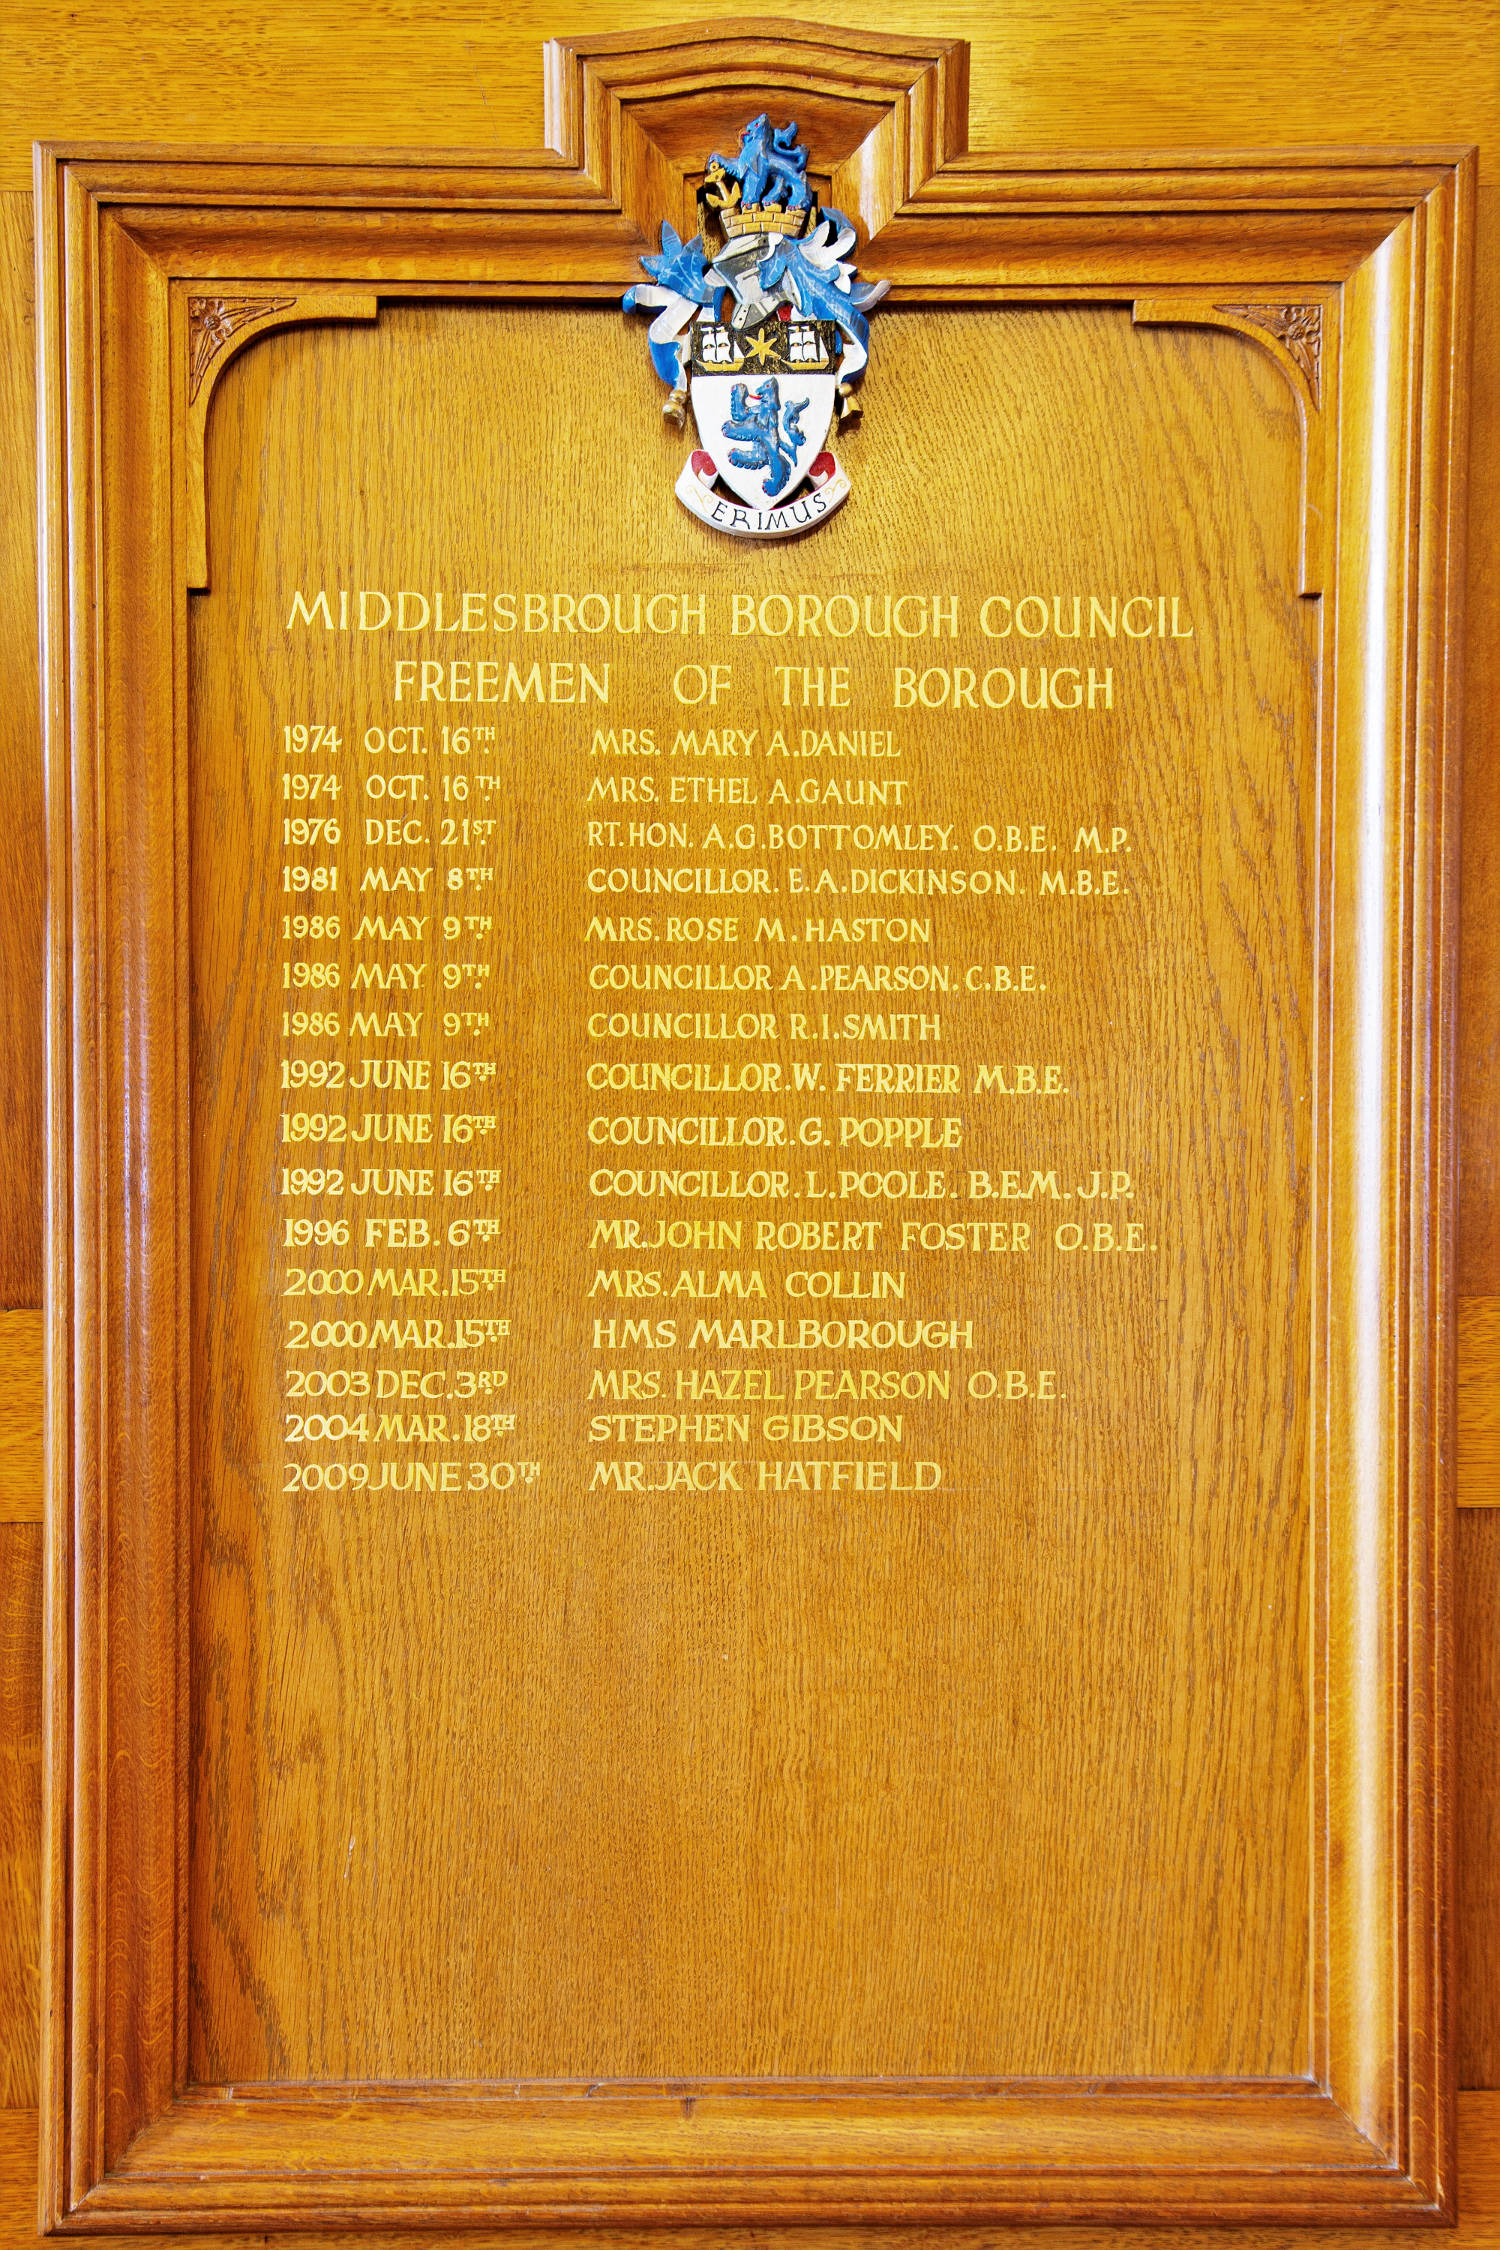 A photo of the Freedom of the Borough list